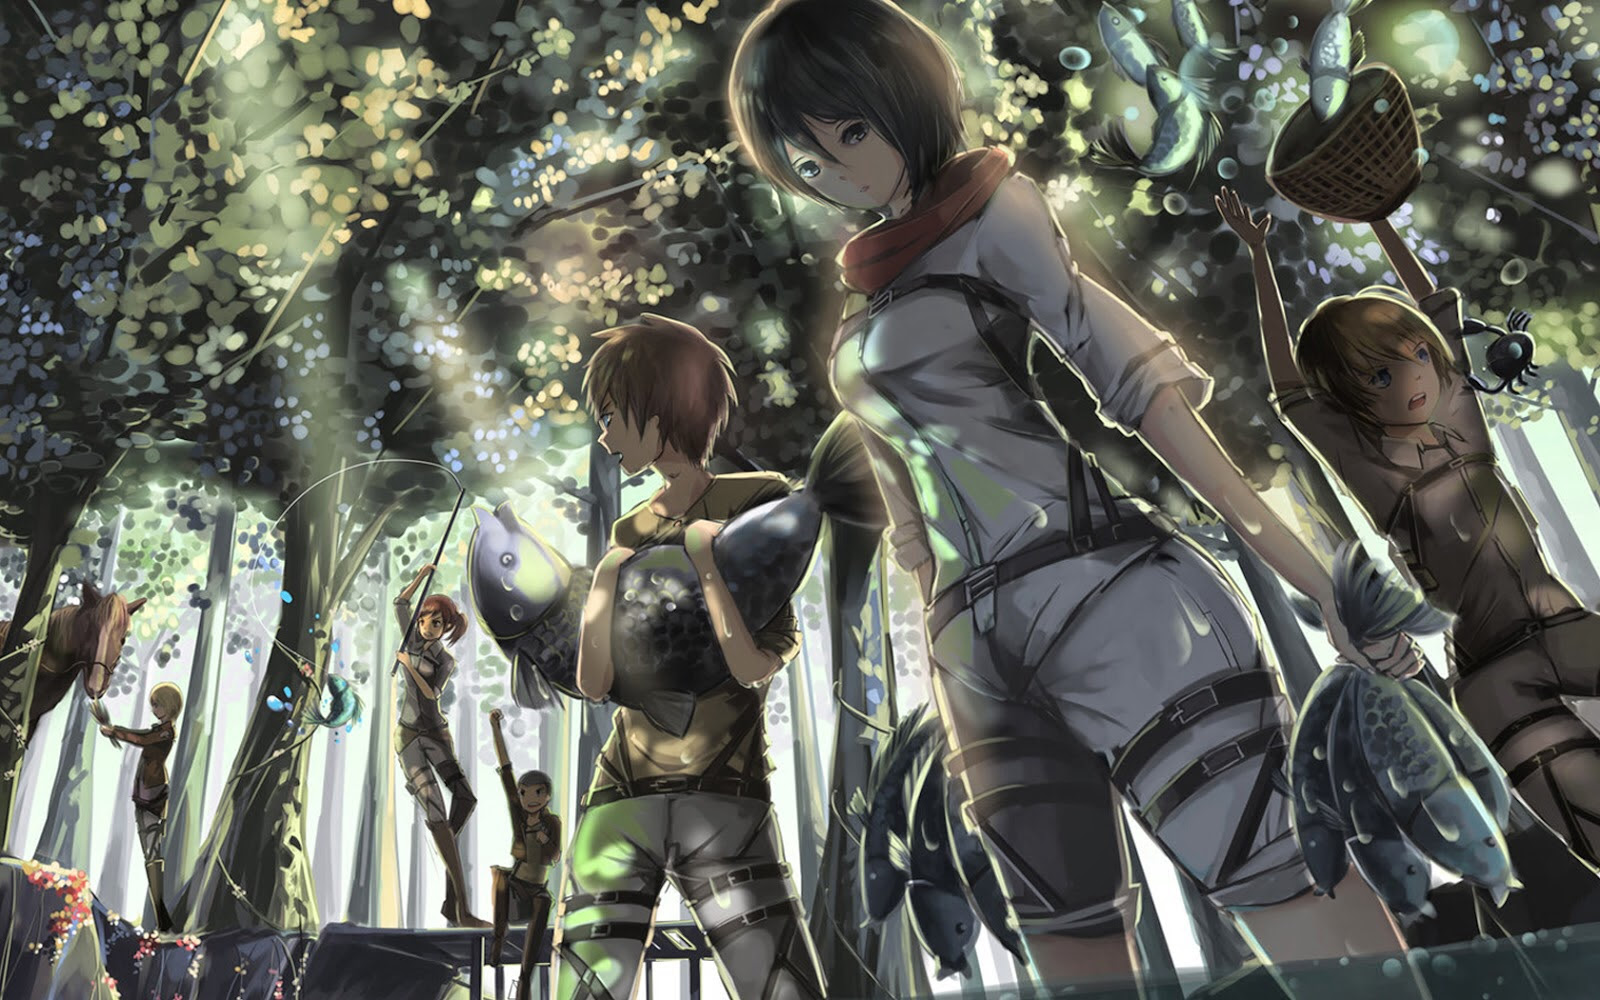 Scouts Wallpaper Shingeki No Kyojin Attack On Titan Wallpaper 37659650 Fanpop